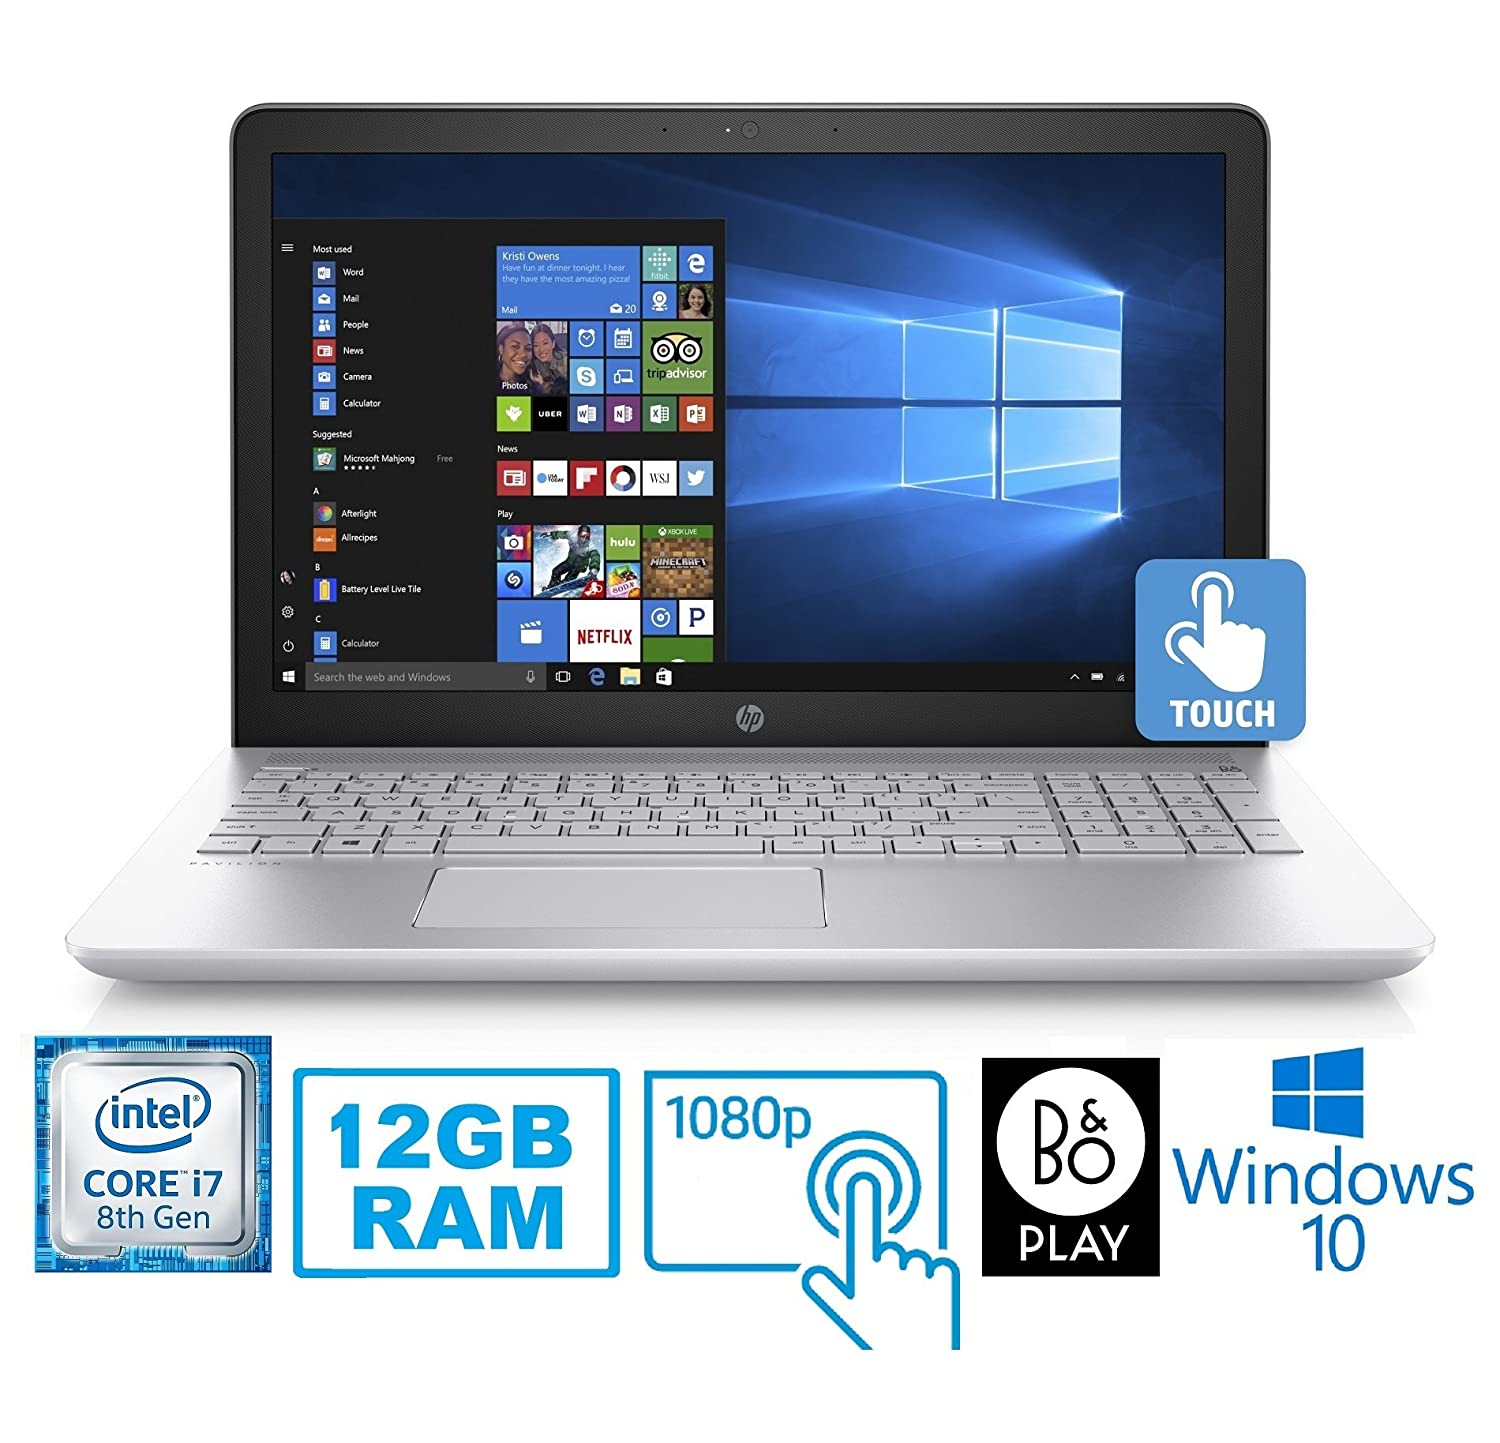 """Amazon.com: HP Pavilion 15-CC Intel Core i7-8850U 12GB 1TB HDD 15.6"""" FHD Touch Screen Laptop (Certified Refurbished): Computers & Accessories"""